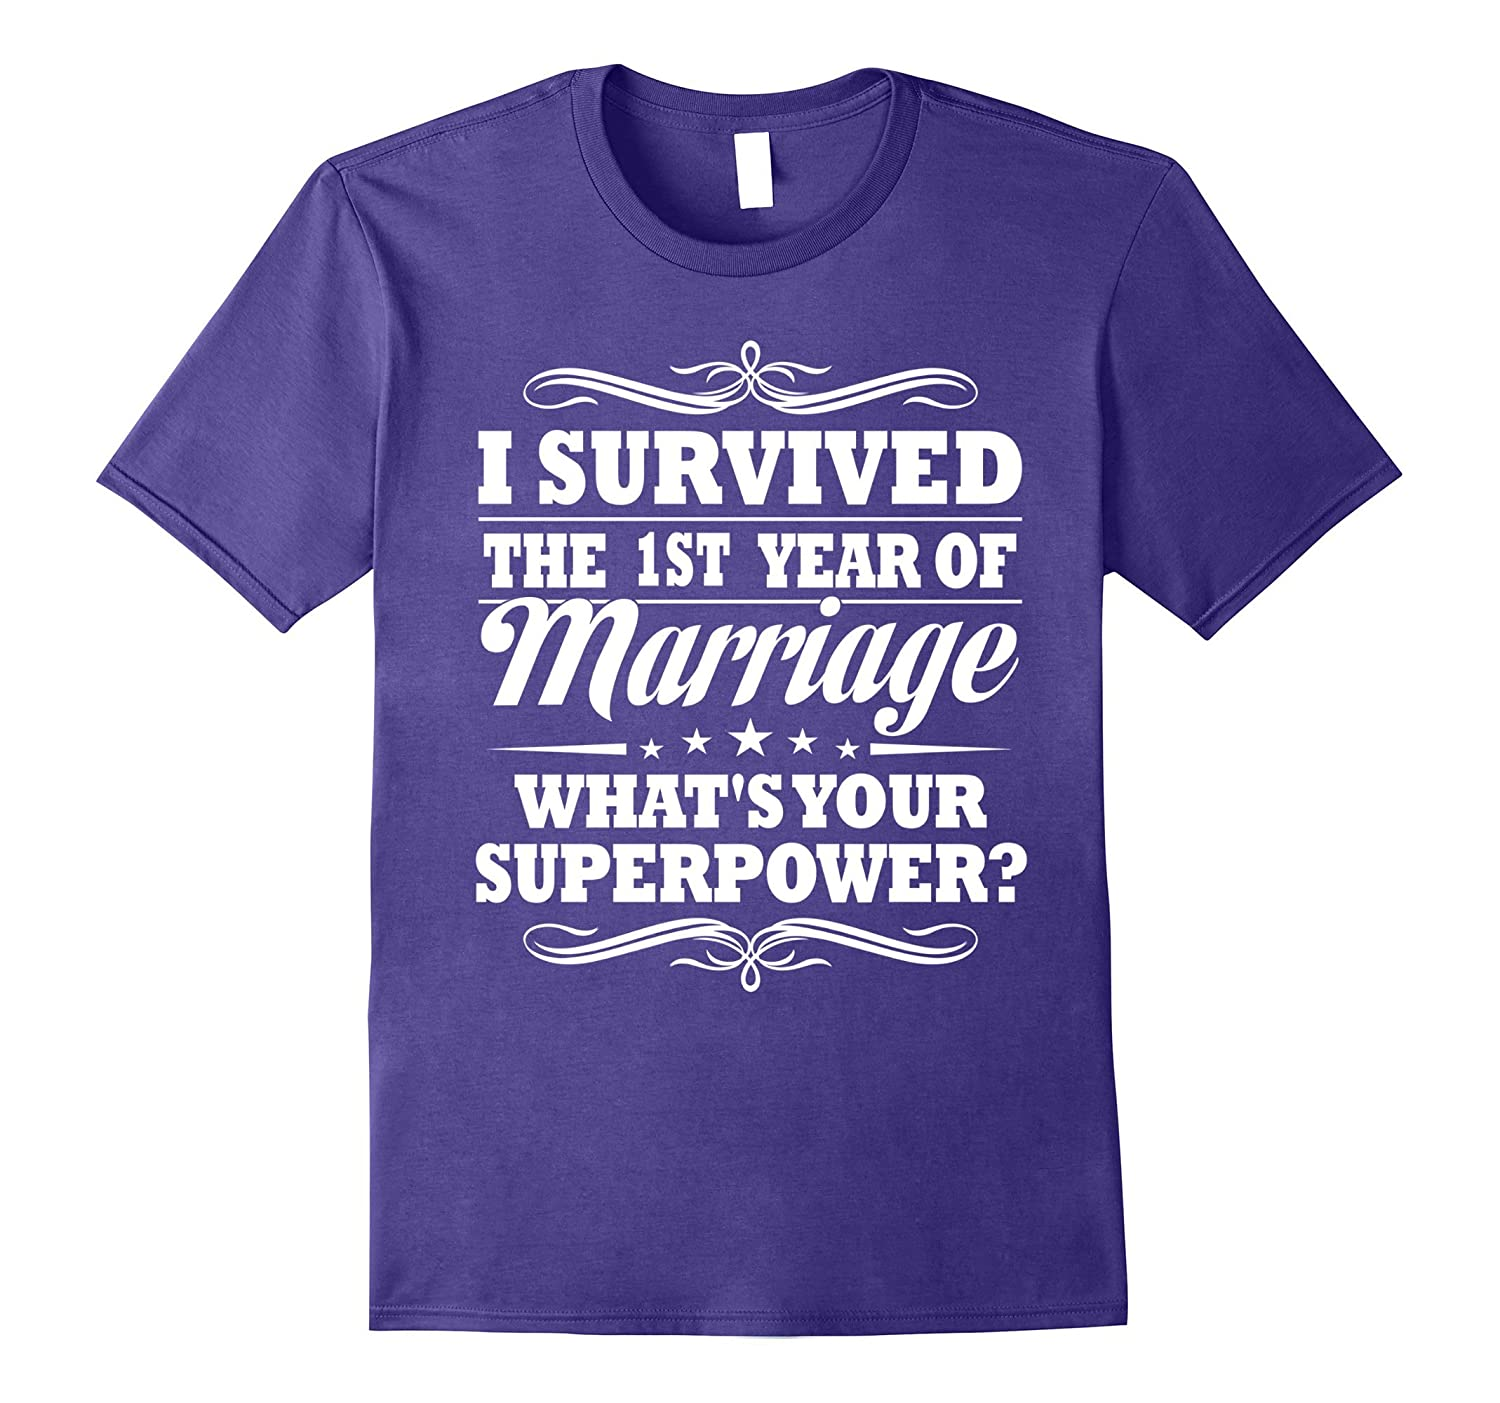 First Wedding Anniversary Gifts For Her: 1st Wedding Anniversary Gift Ideas For Her Him- I Survived